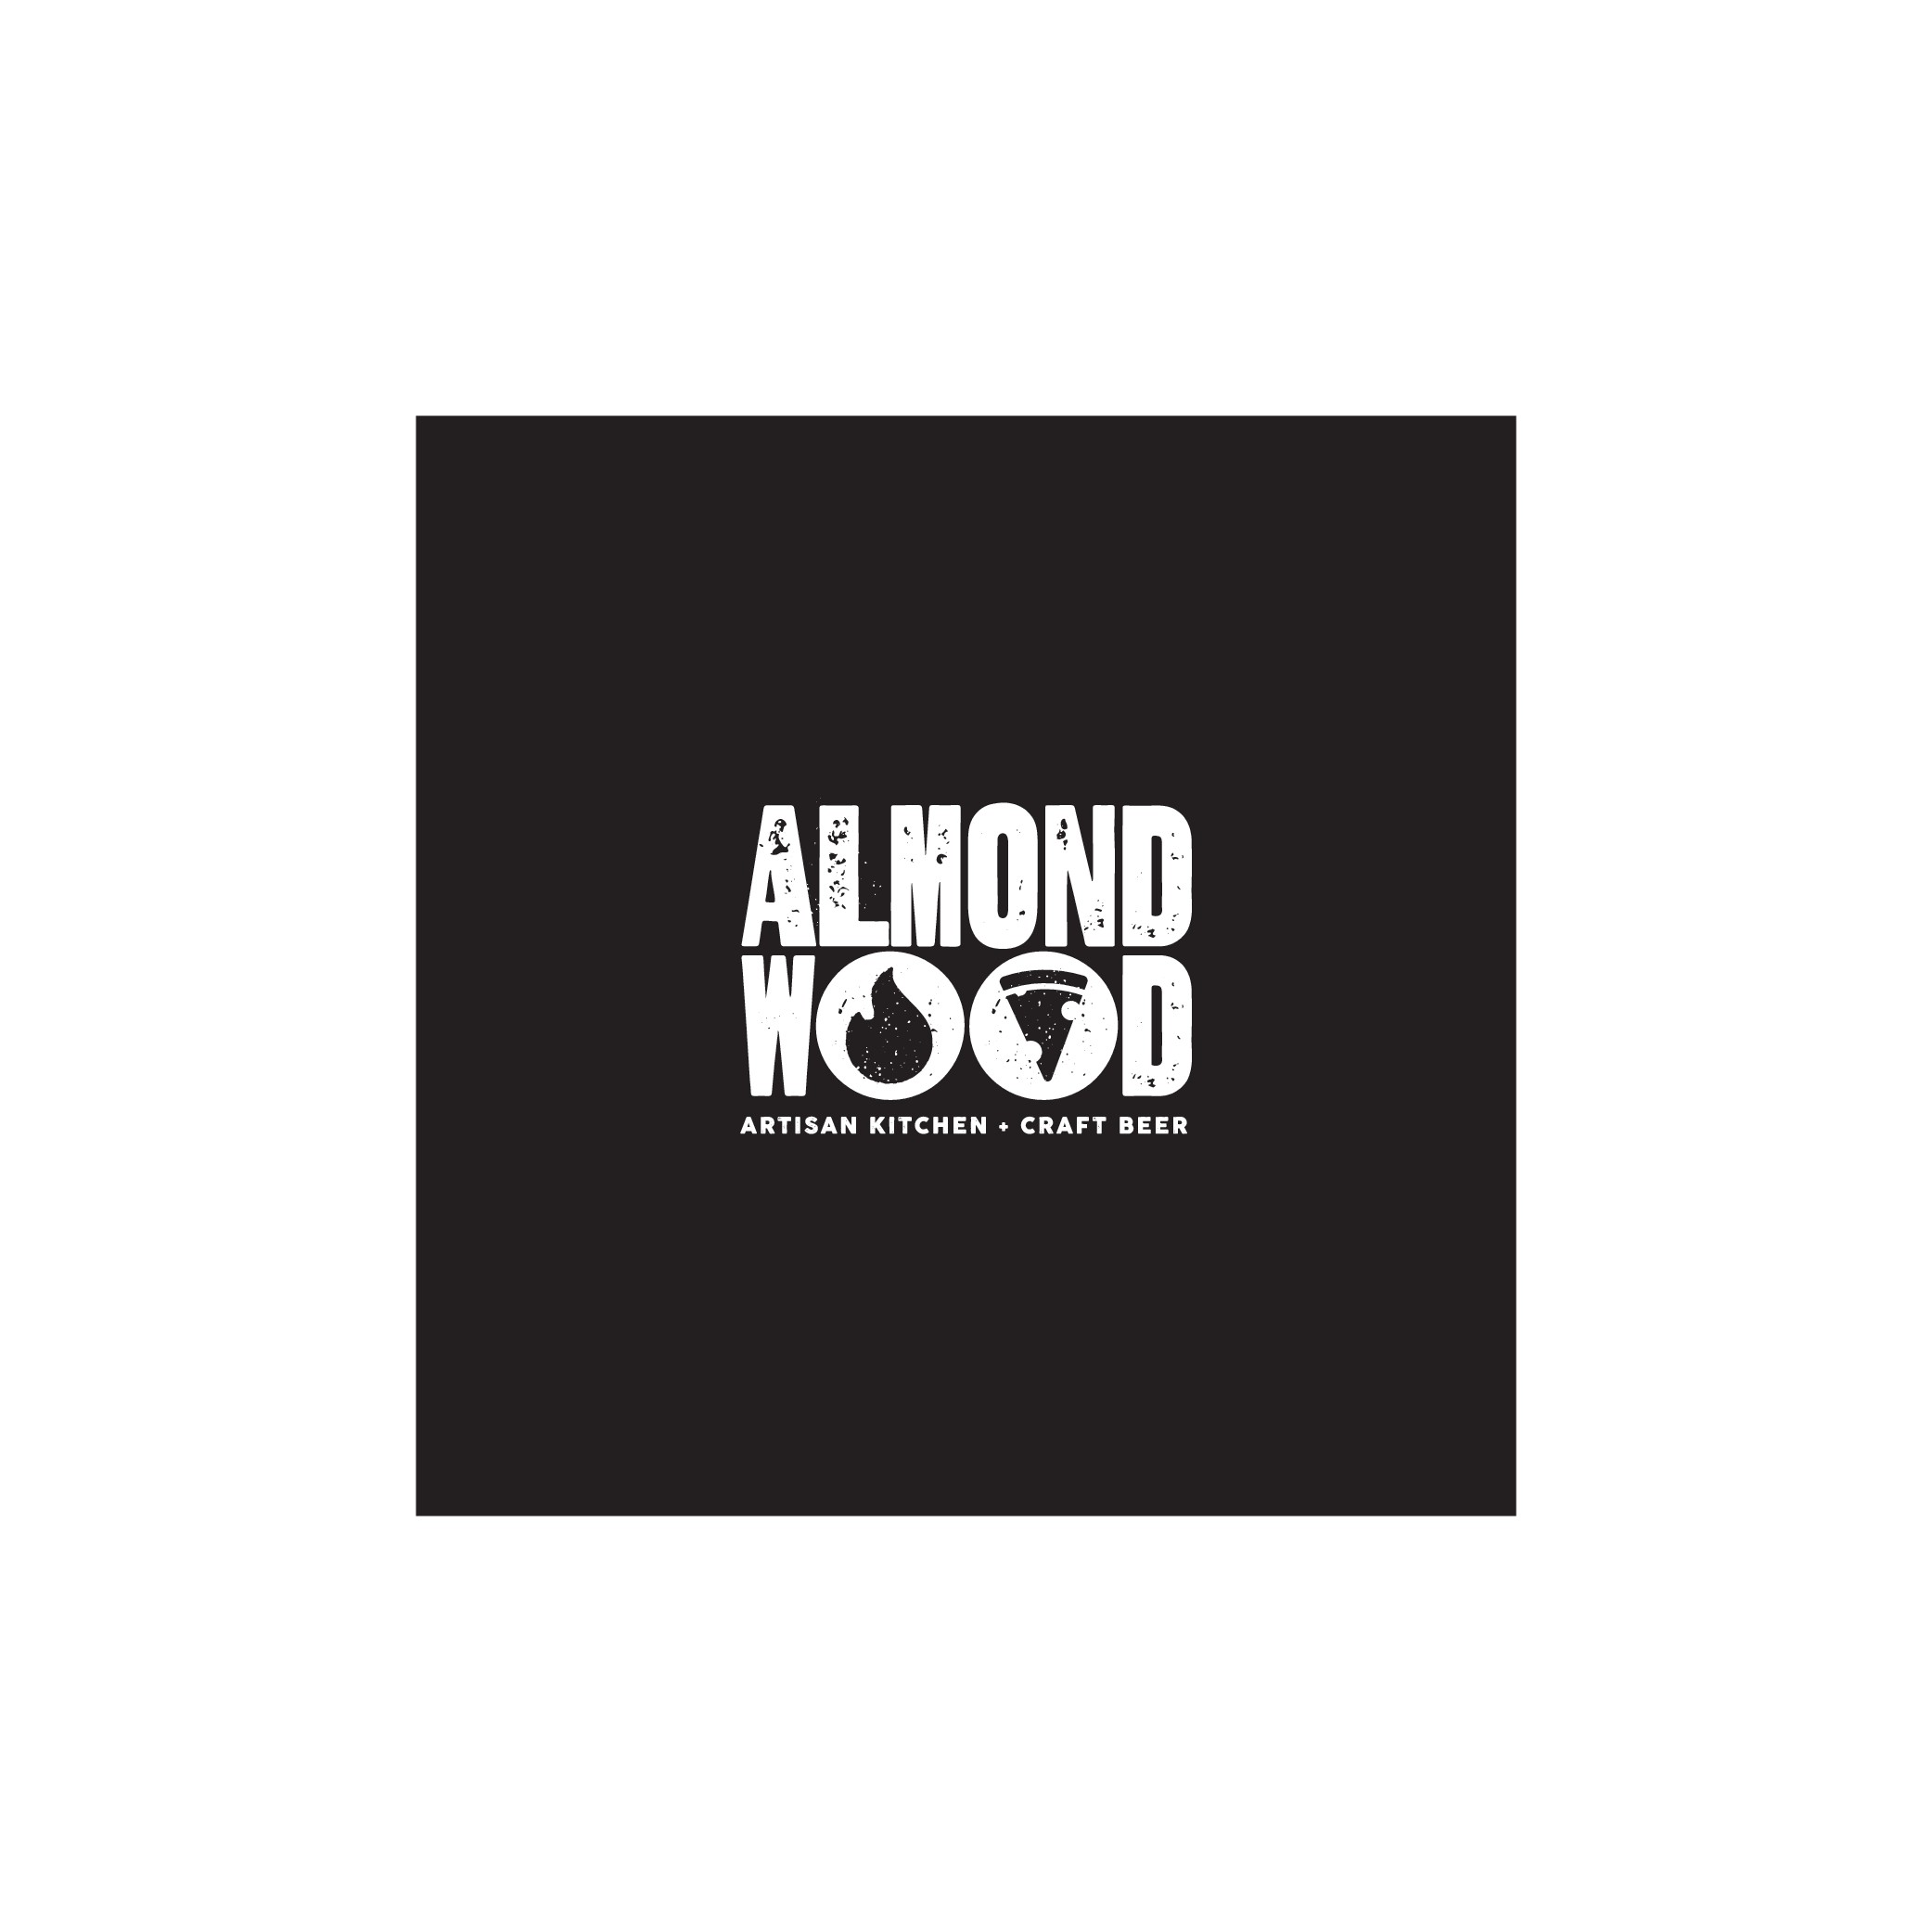 Help take Almond Wood Restaurant to the next level